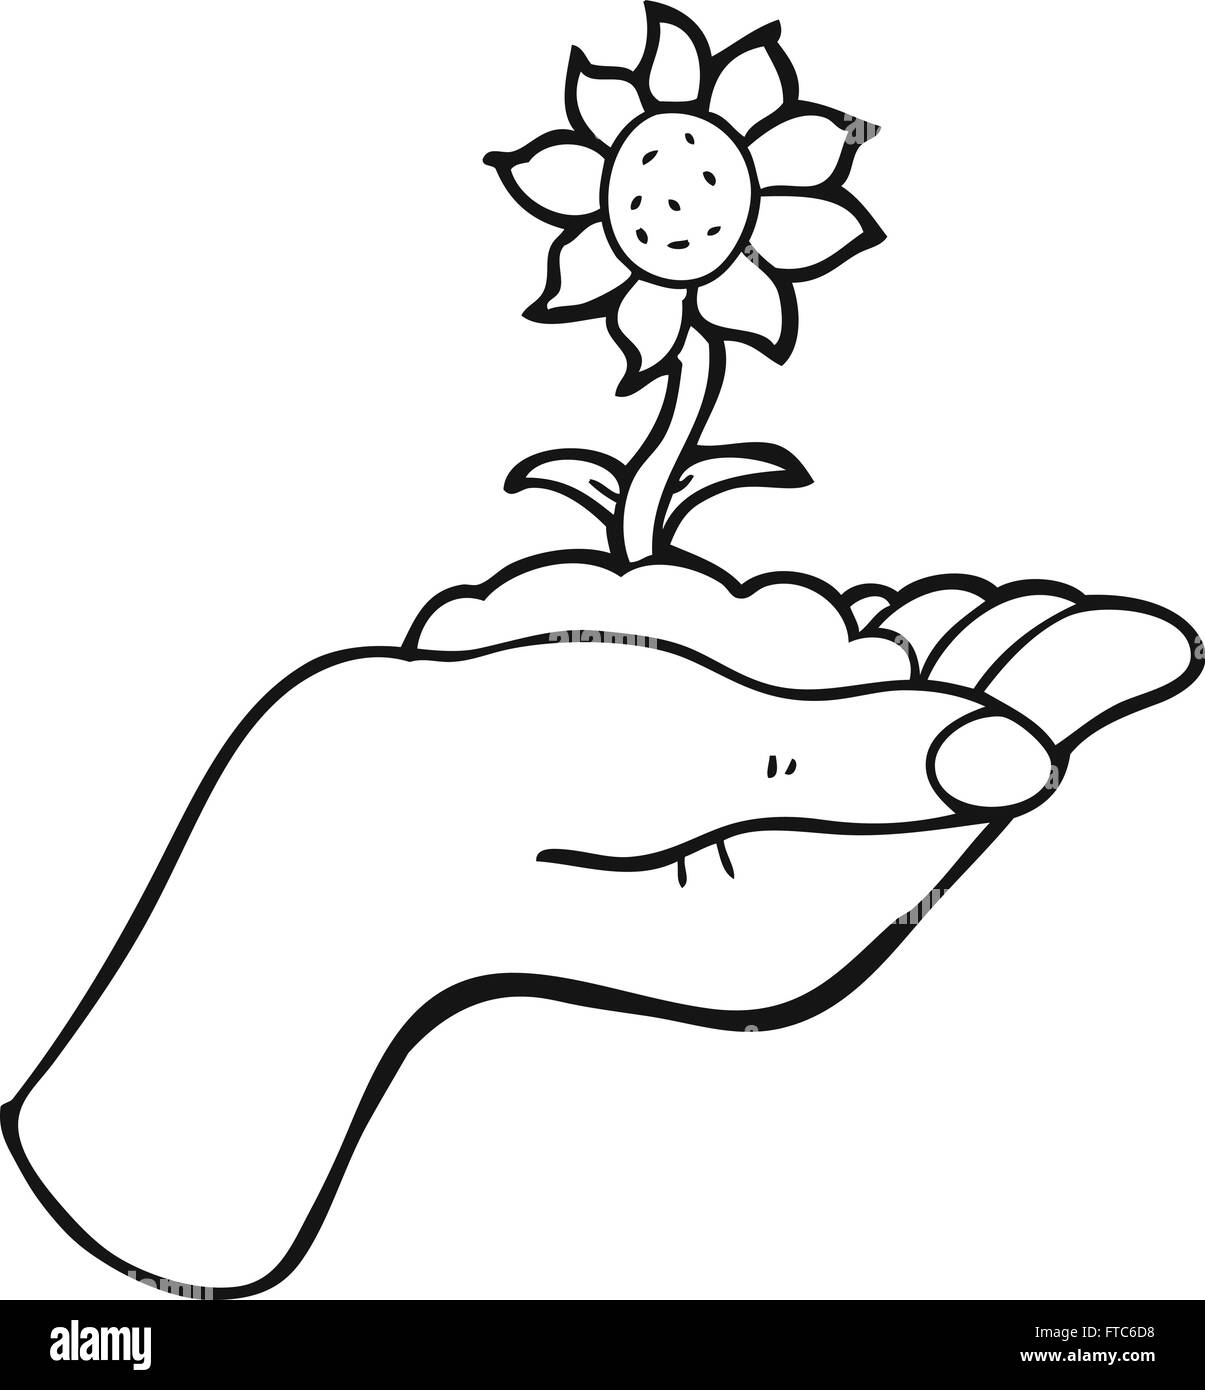 Freehand Drawn Black And White Cartoon Flower Growing In Palm Of